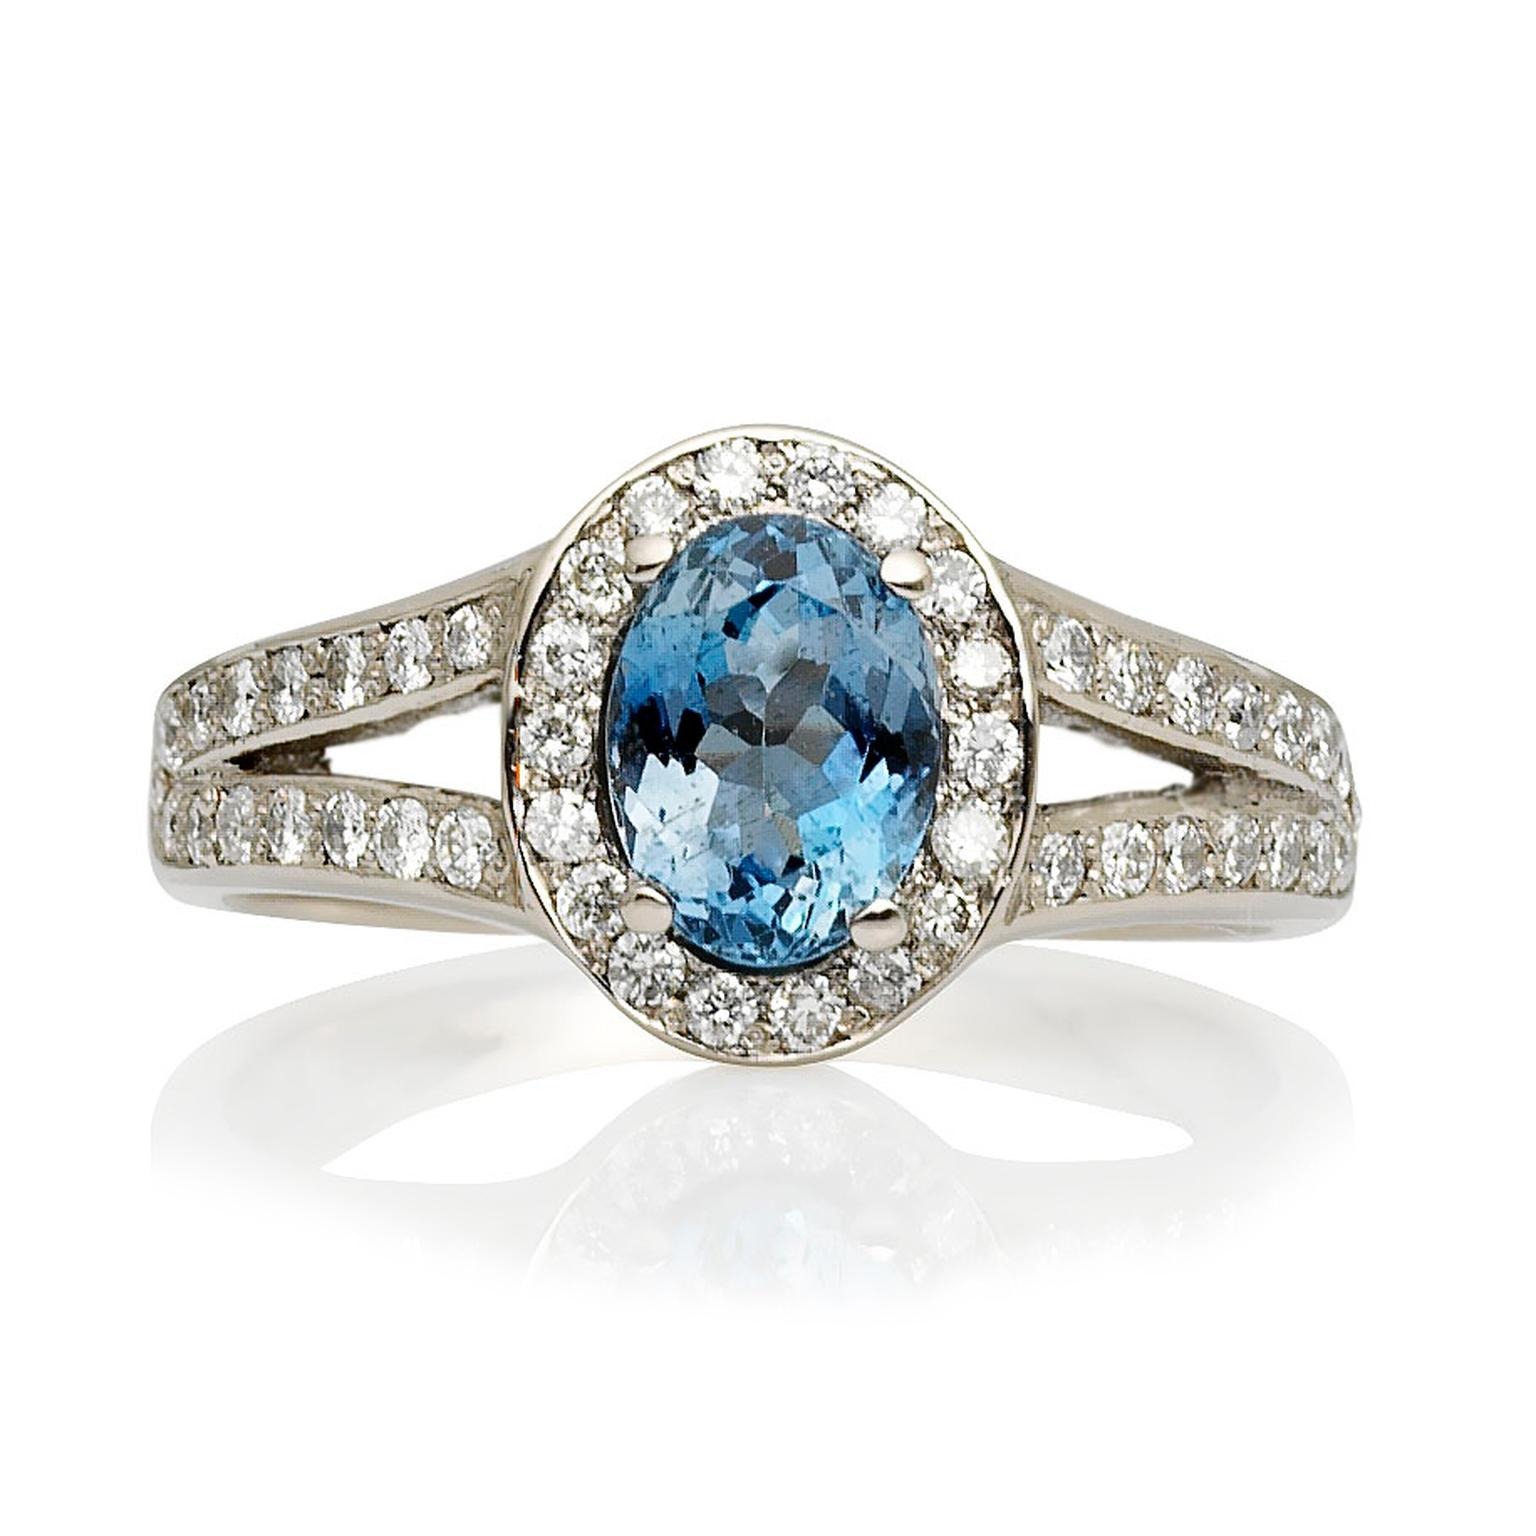 Cred Afro Cocktail aquamarine engagement ring with diamonds